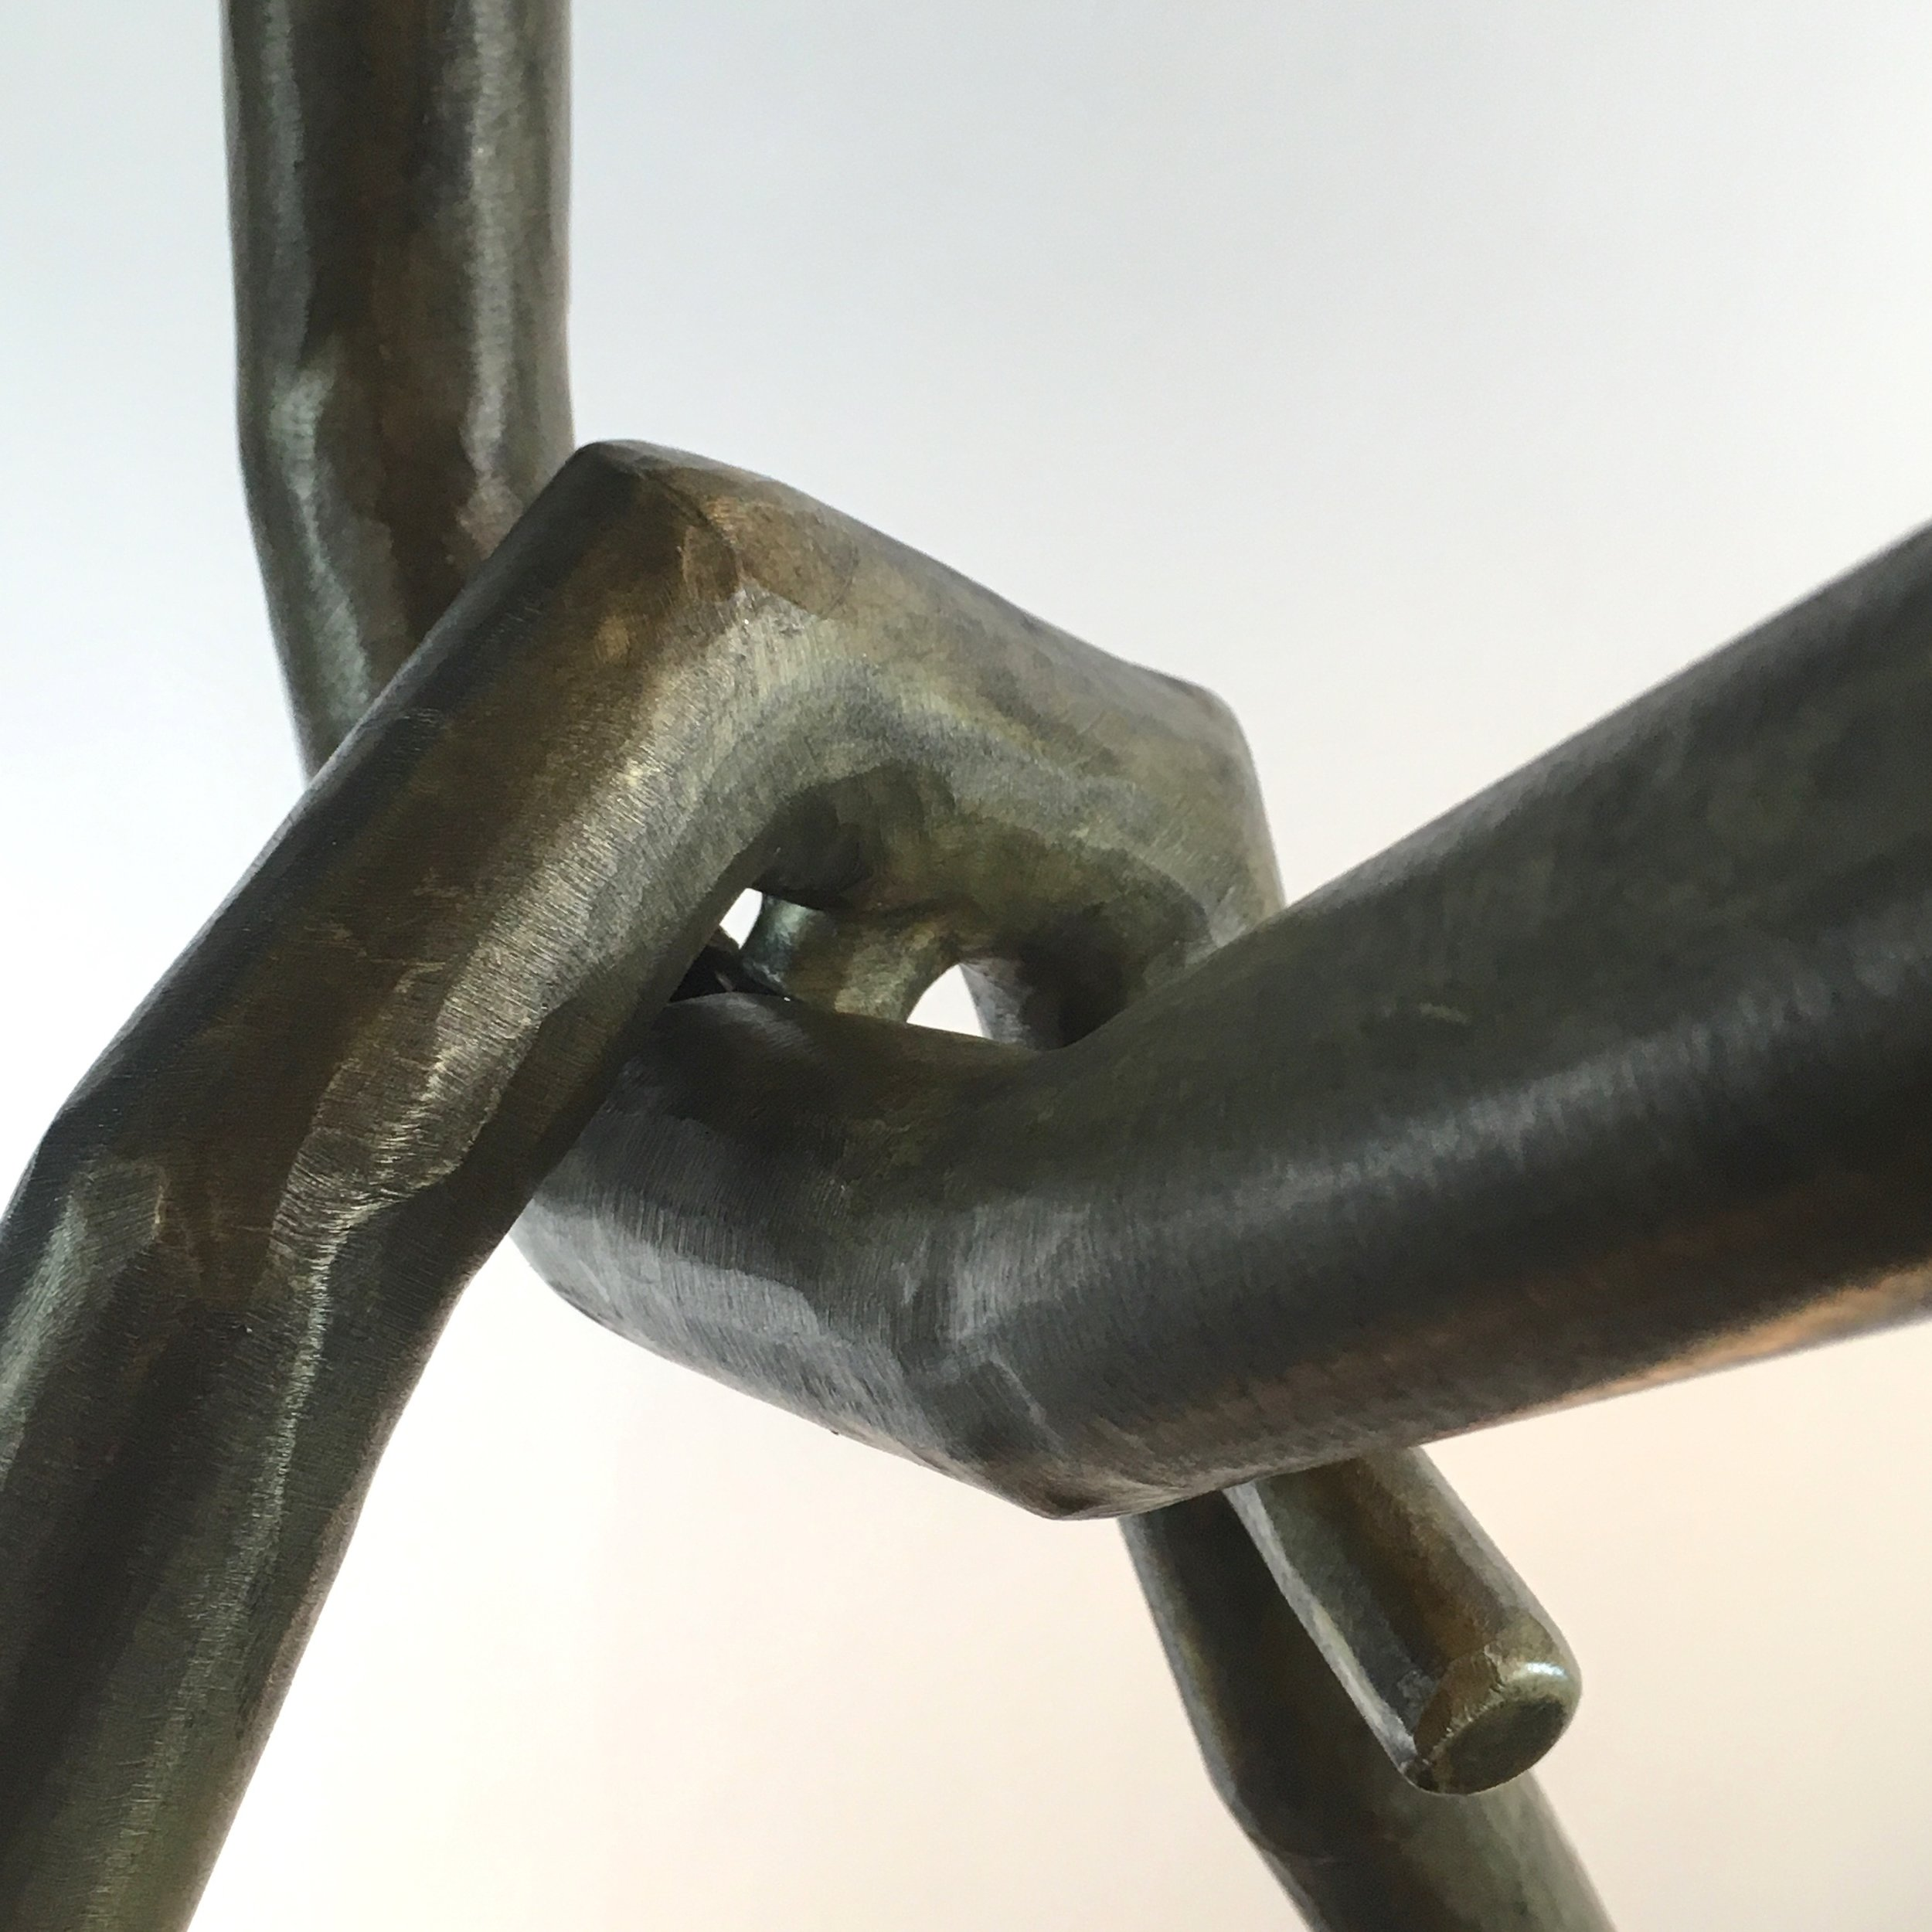 Linked branch detail